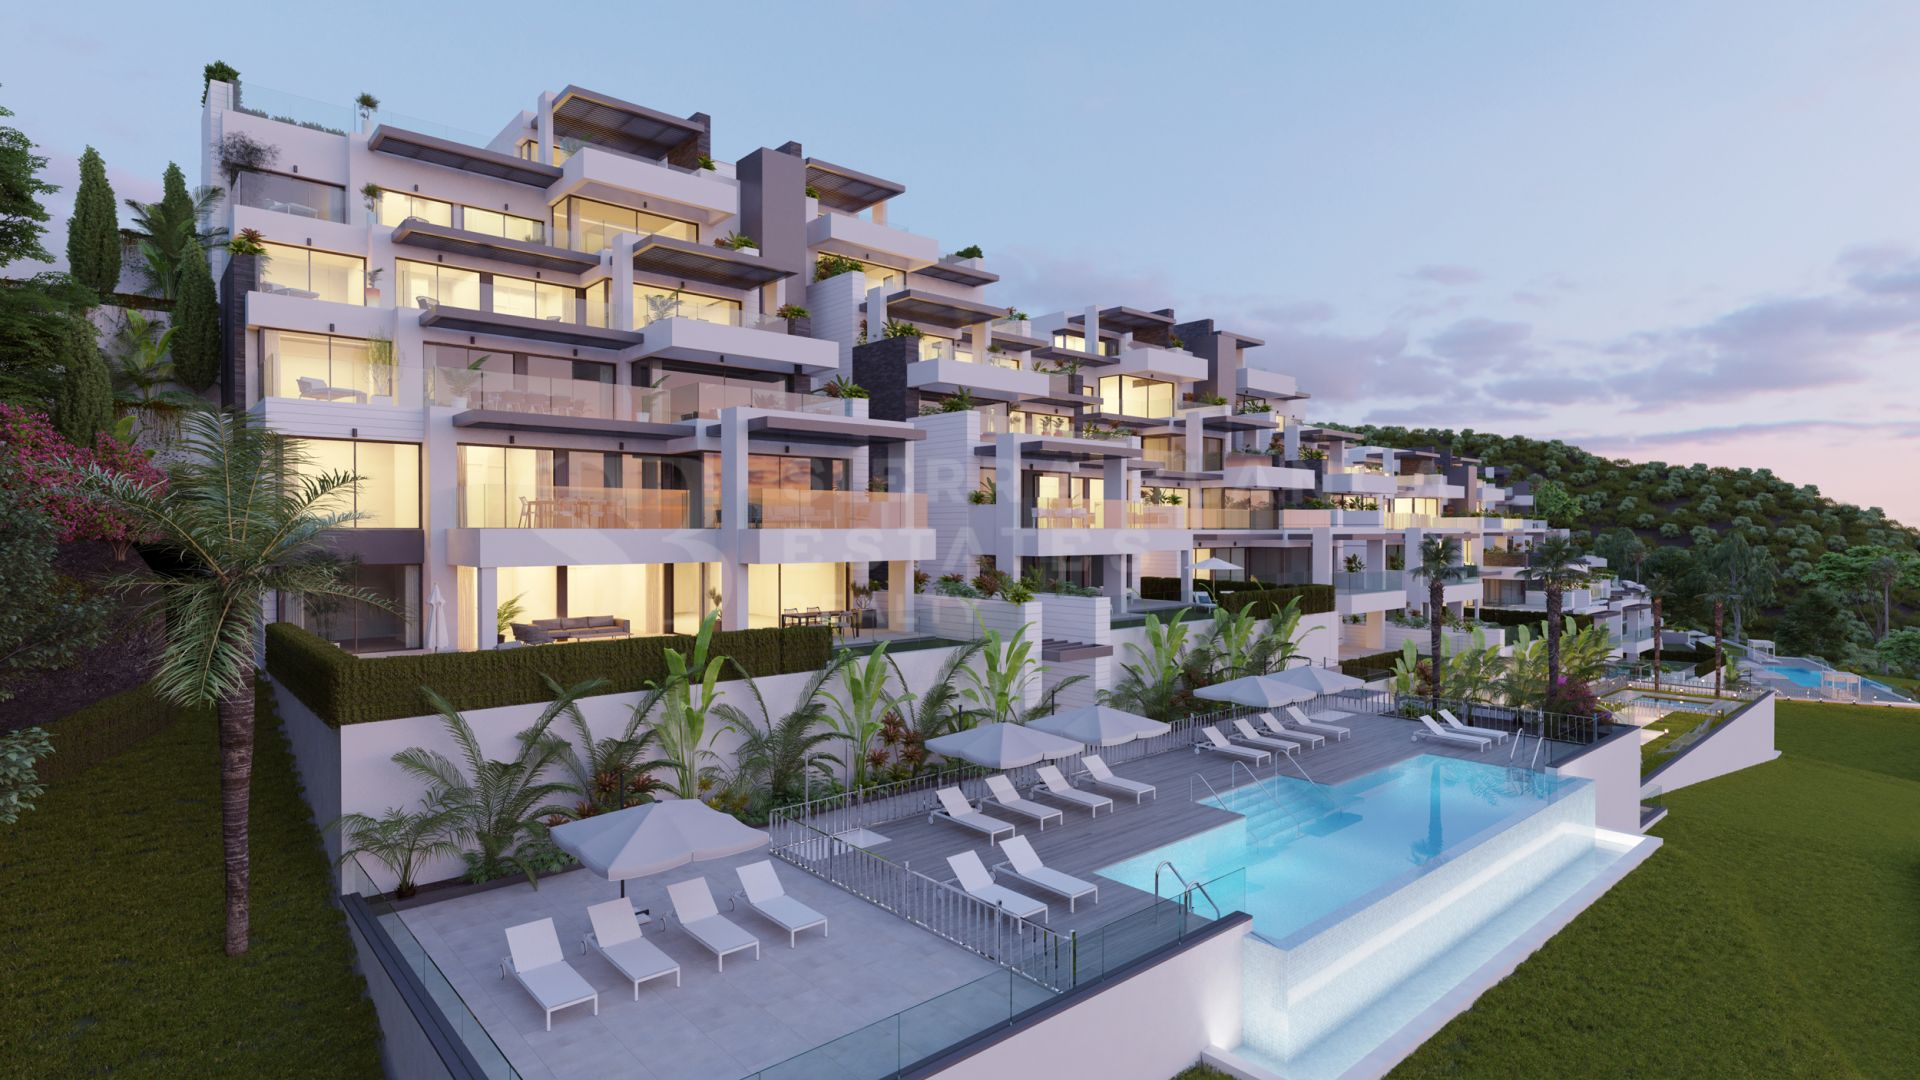 Aqualina - High Quality Apartments with Sea Views in Benahavís